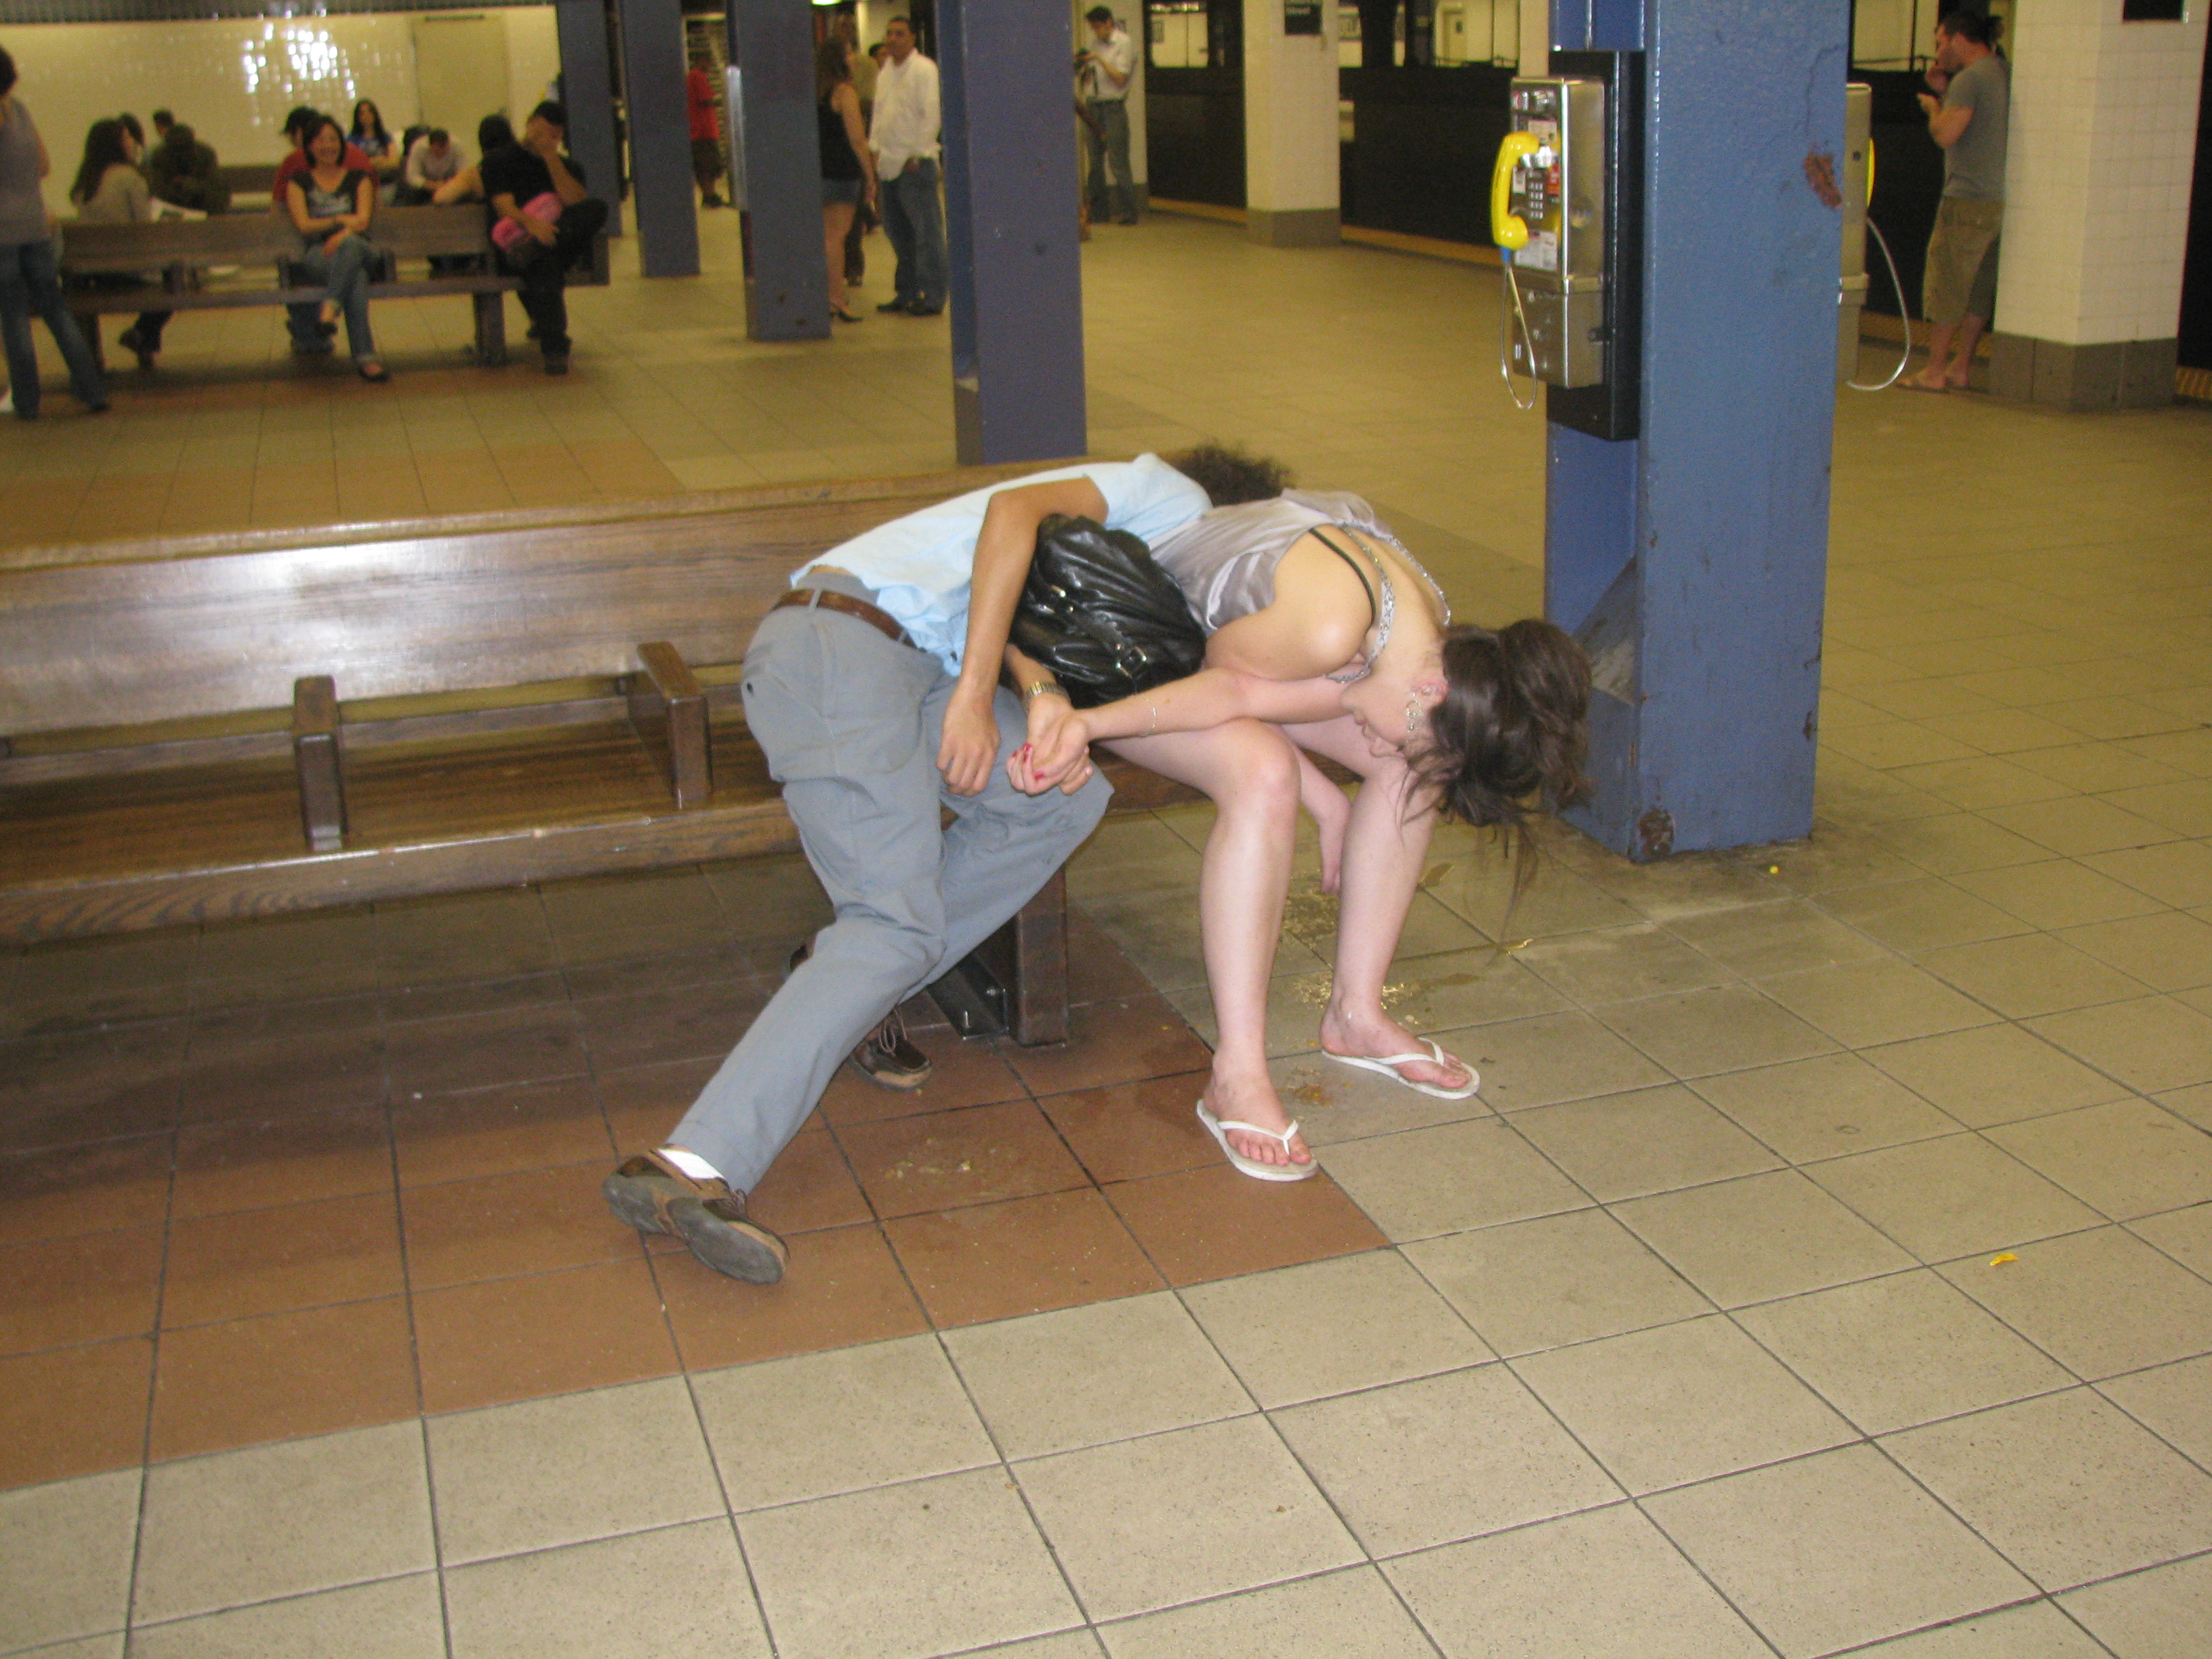 Drunk Couple in Vomit